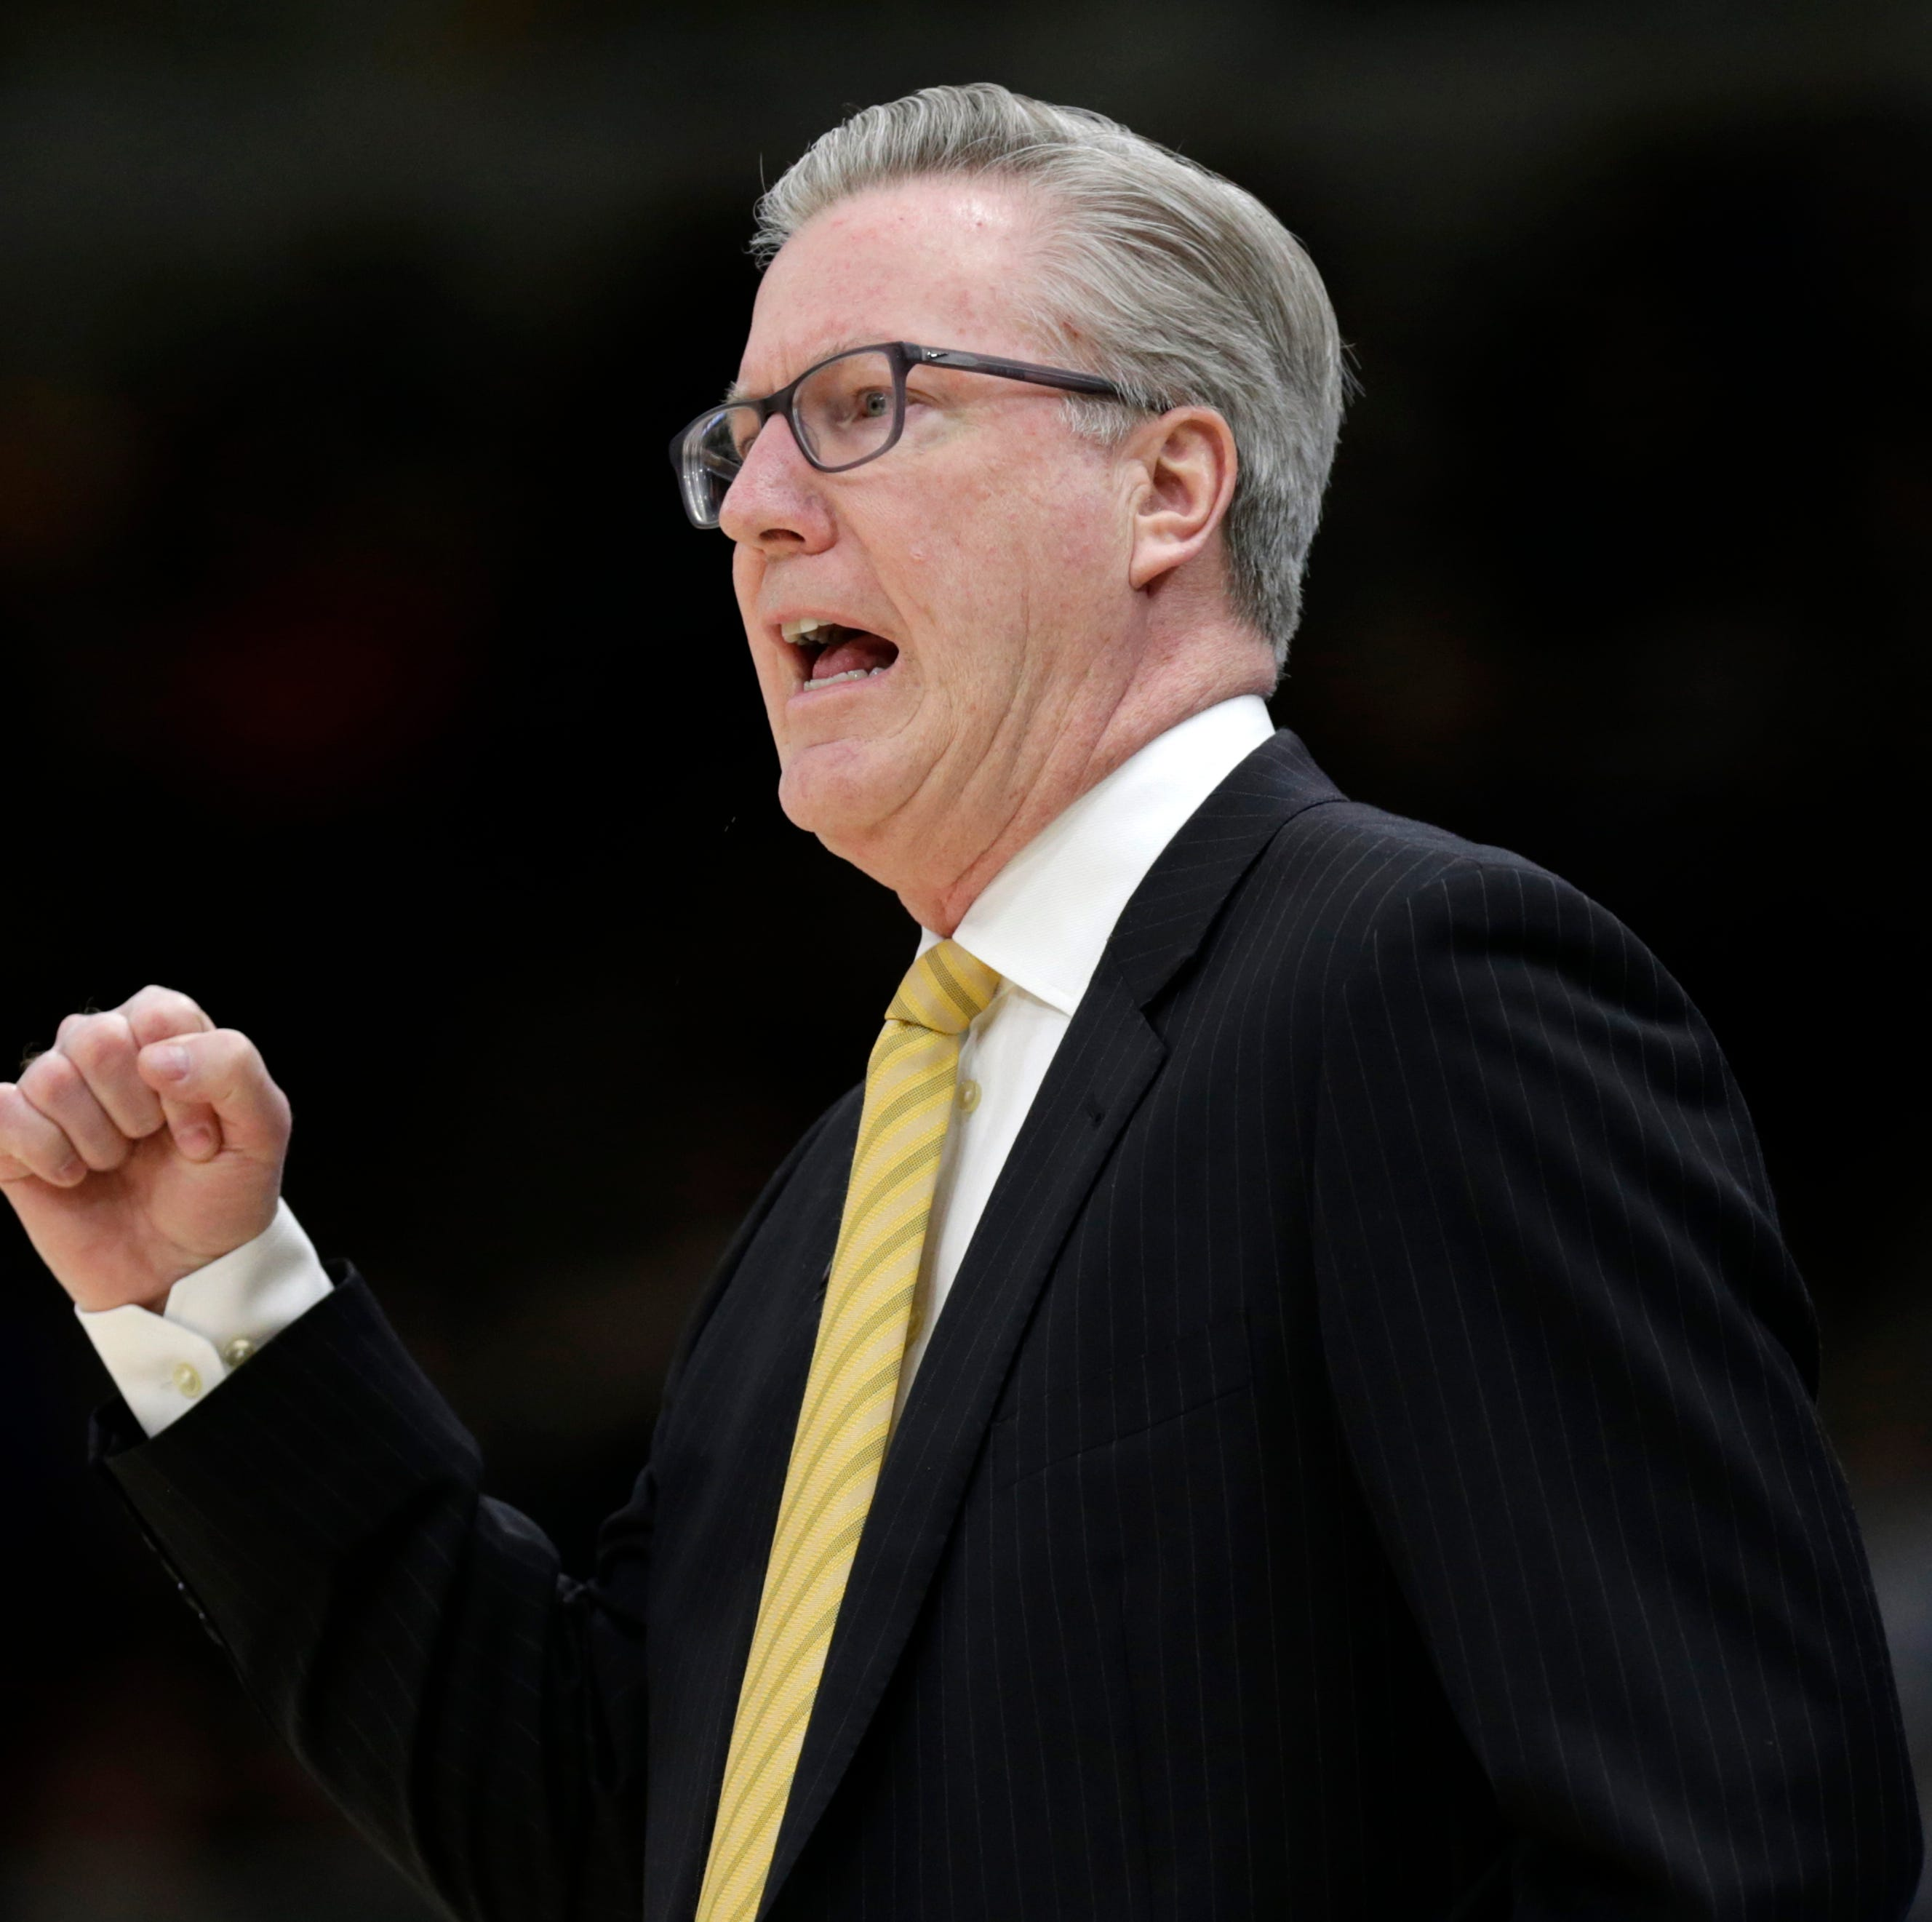 Iowa basketball: What Fran McCaffery and Hawkeye players said before NCAA Tournament